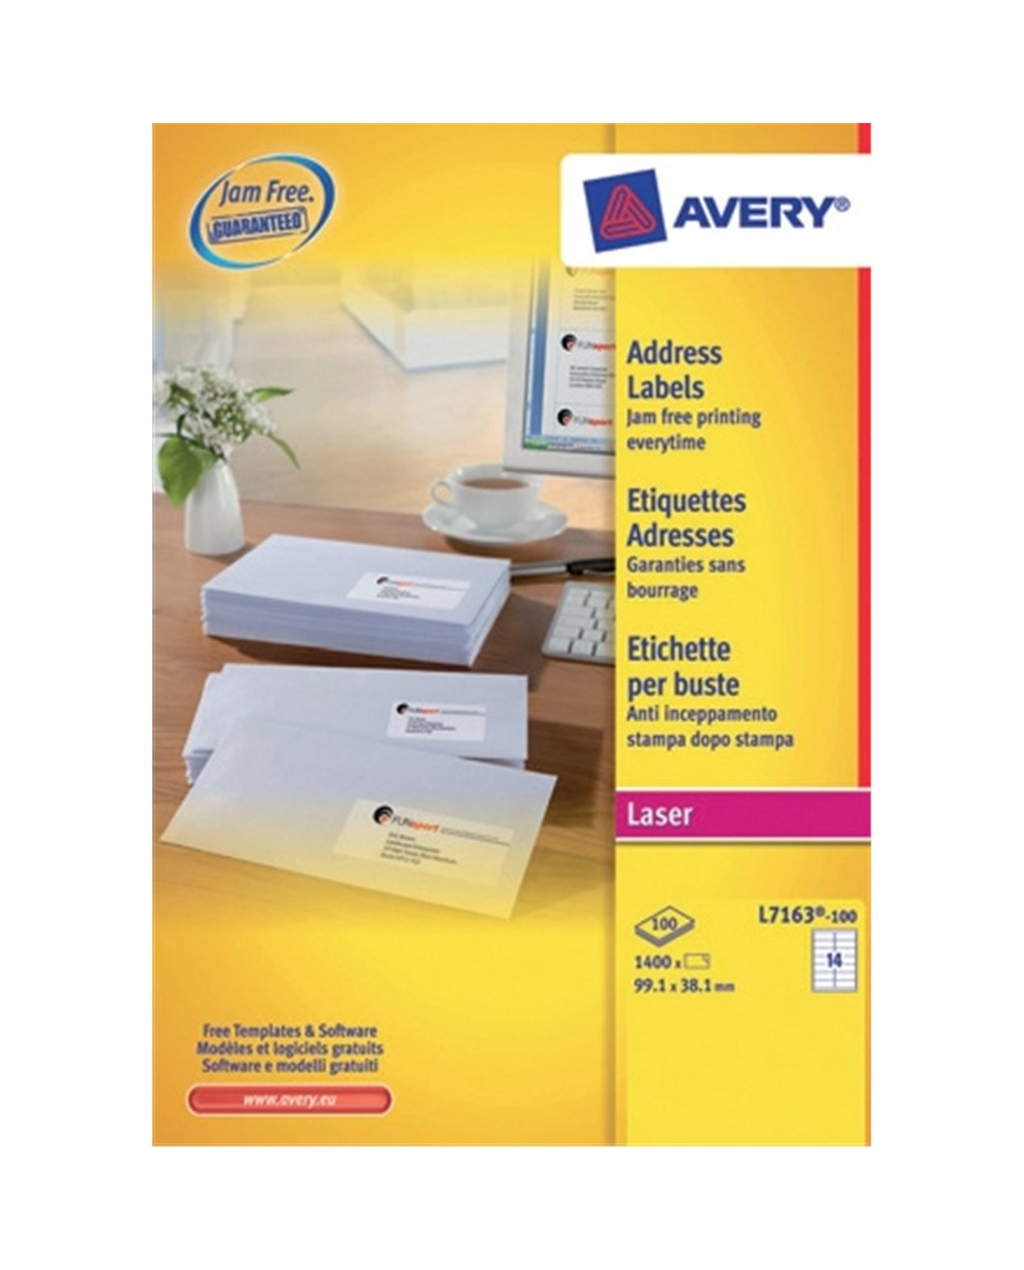 Avery Laser Labels - Jam-Free L7167, 199.6 x 289.1mm